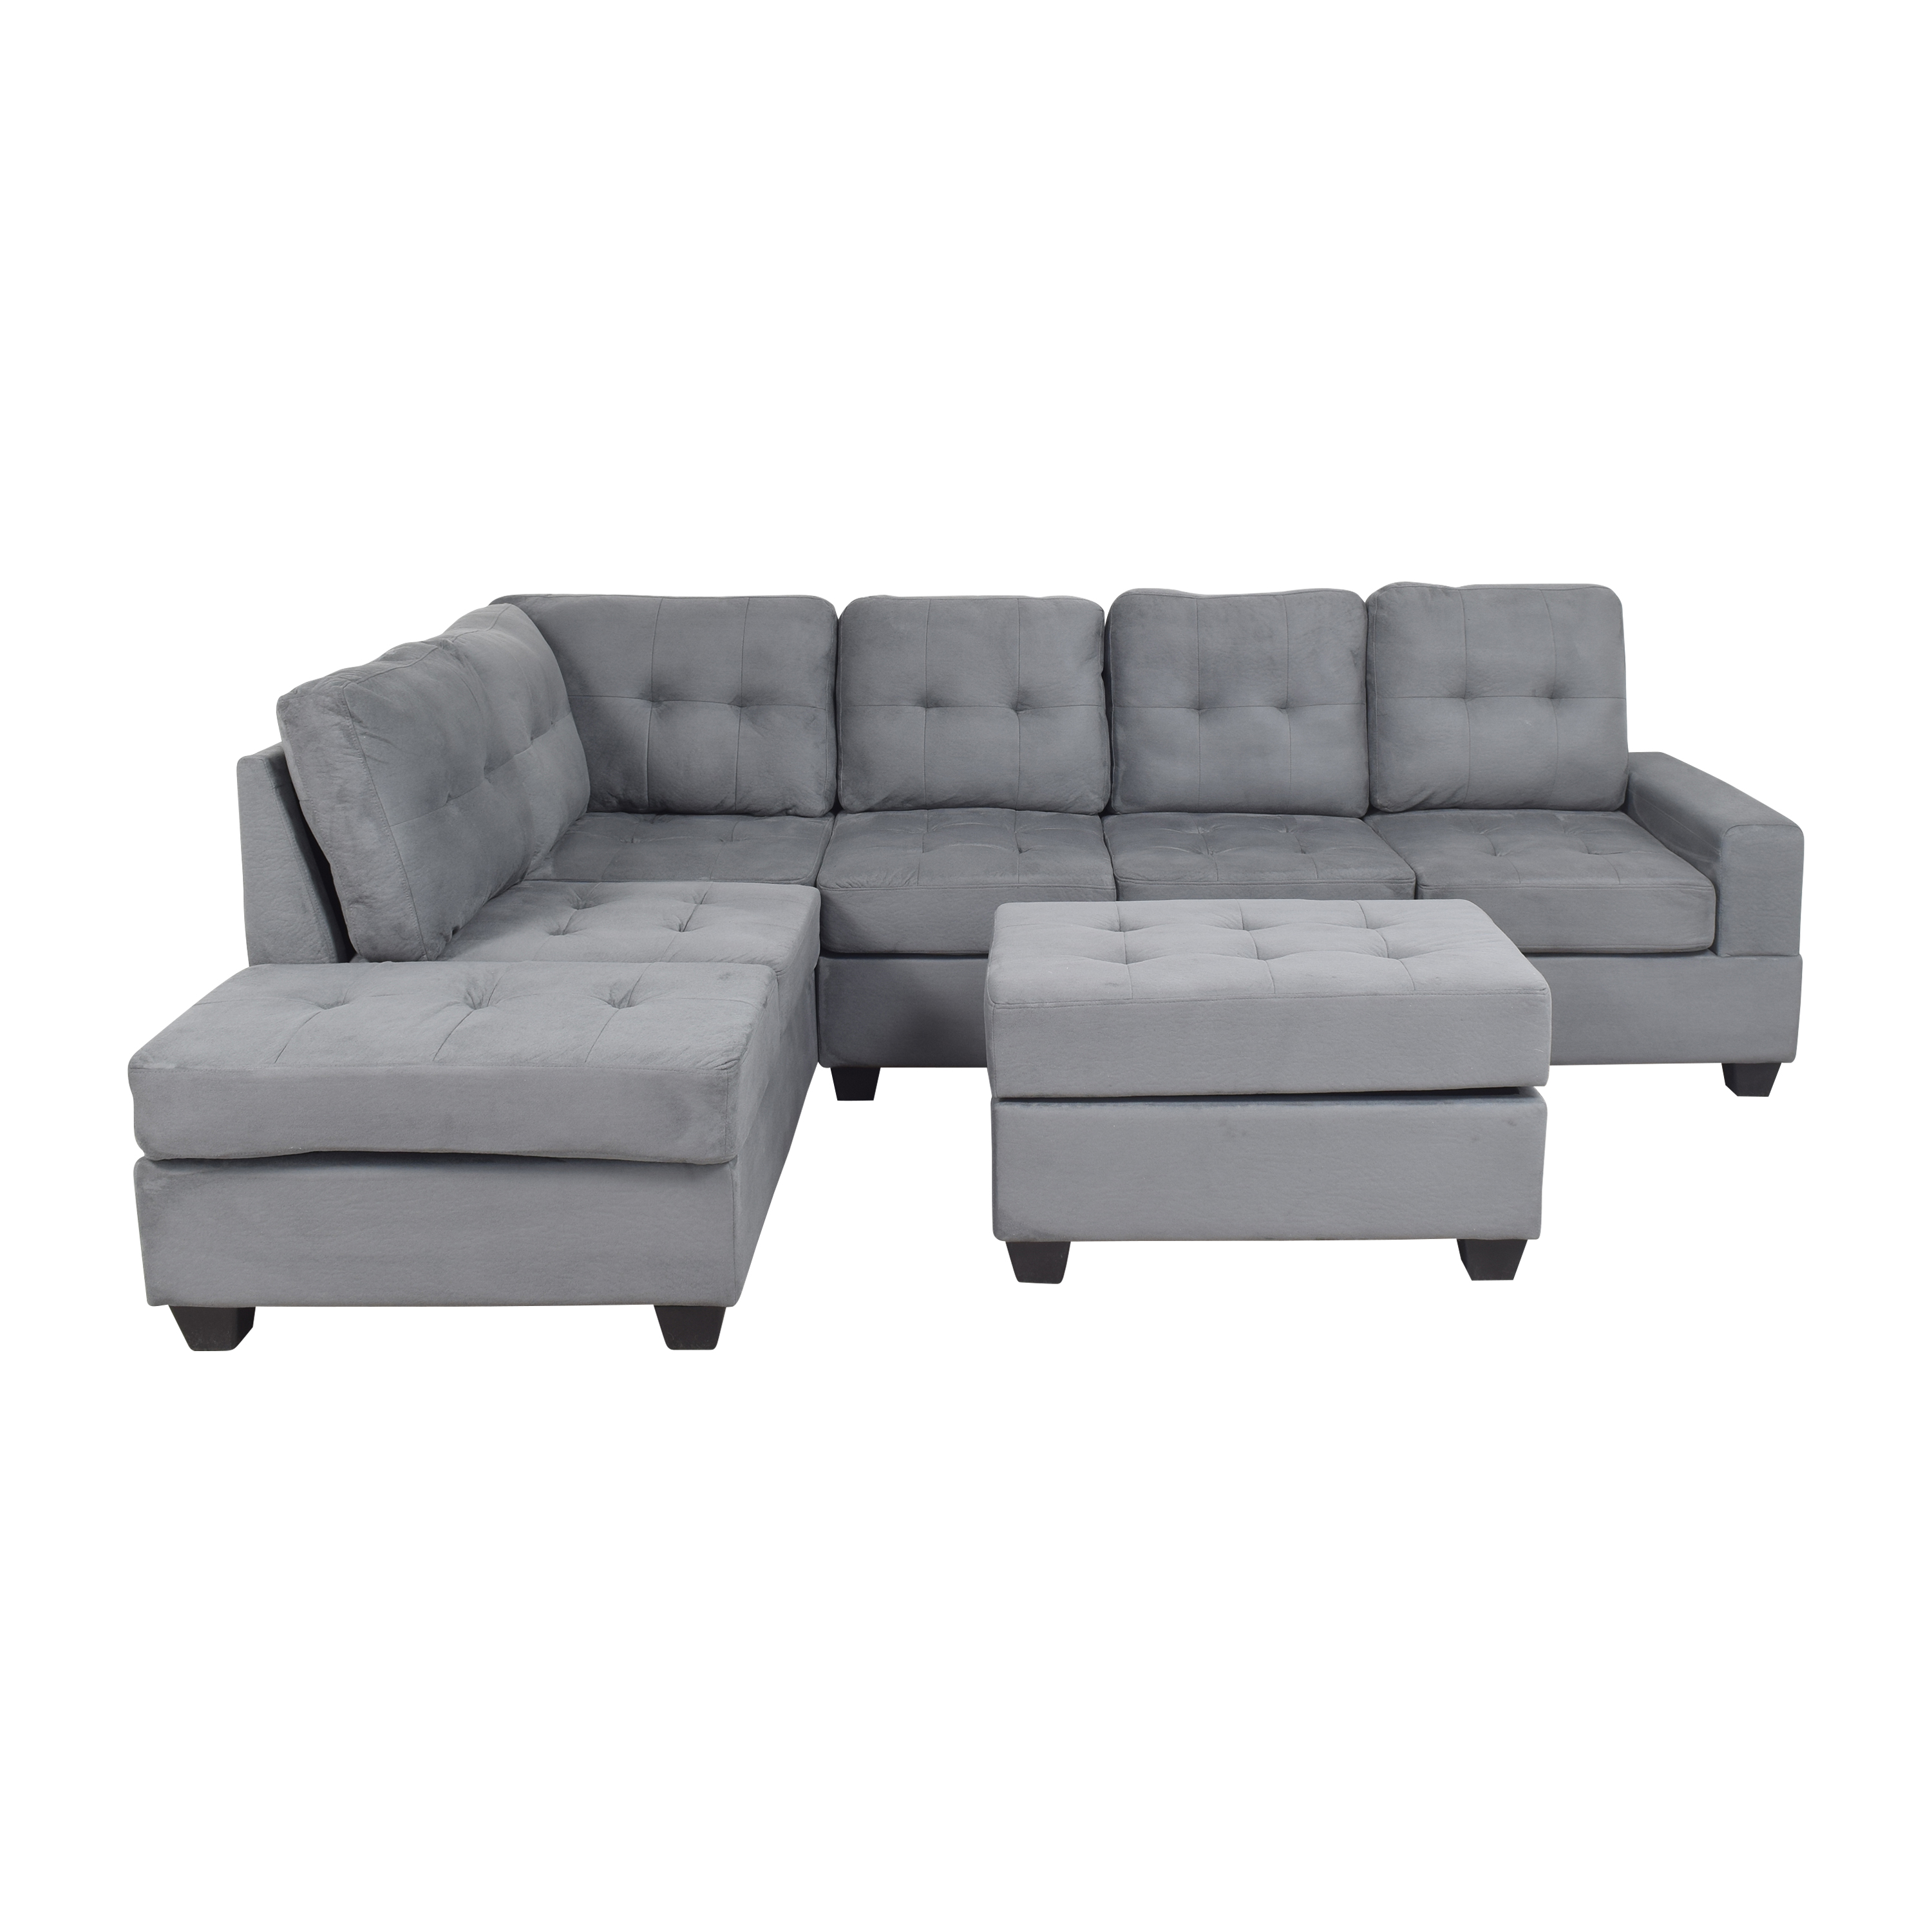 shop Walmart Walmart Reversible Chaise Sectional with Storage Ottoman online